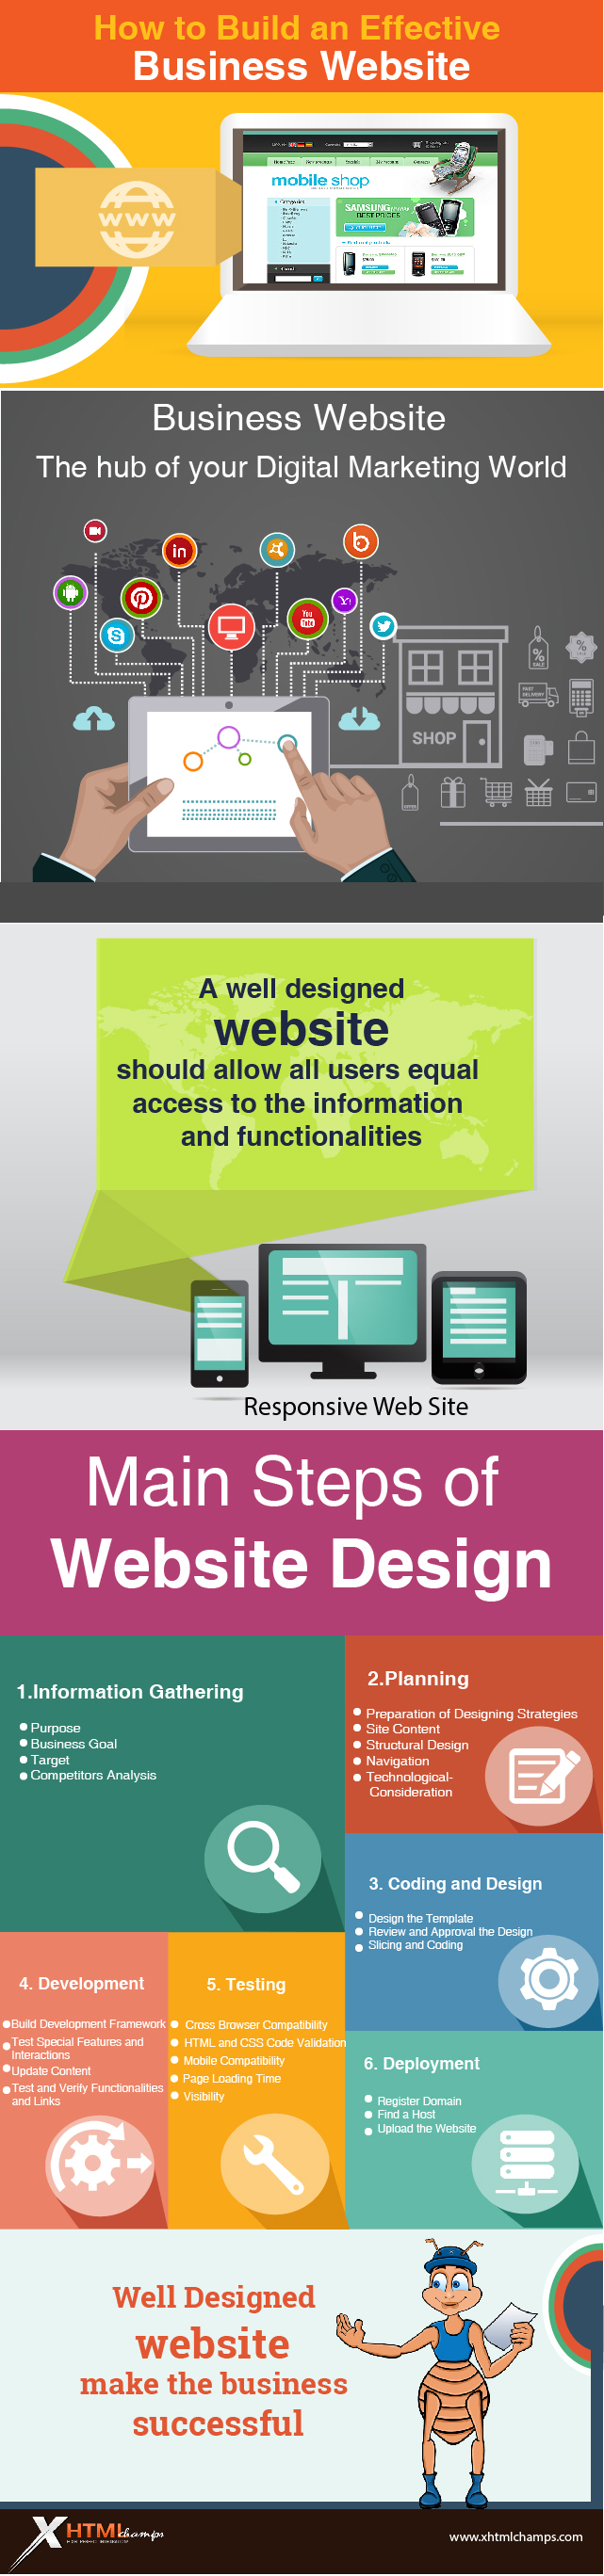 web design, web development, website design, responsive webdesign